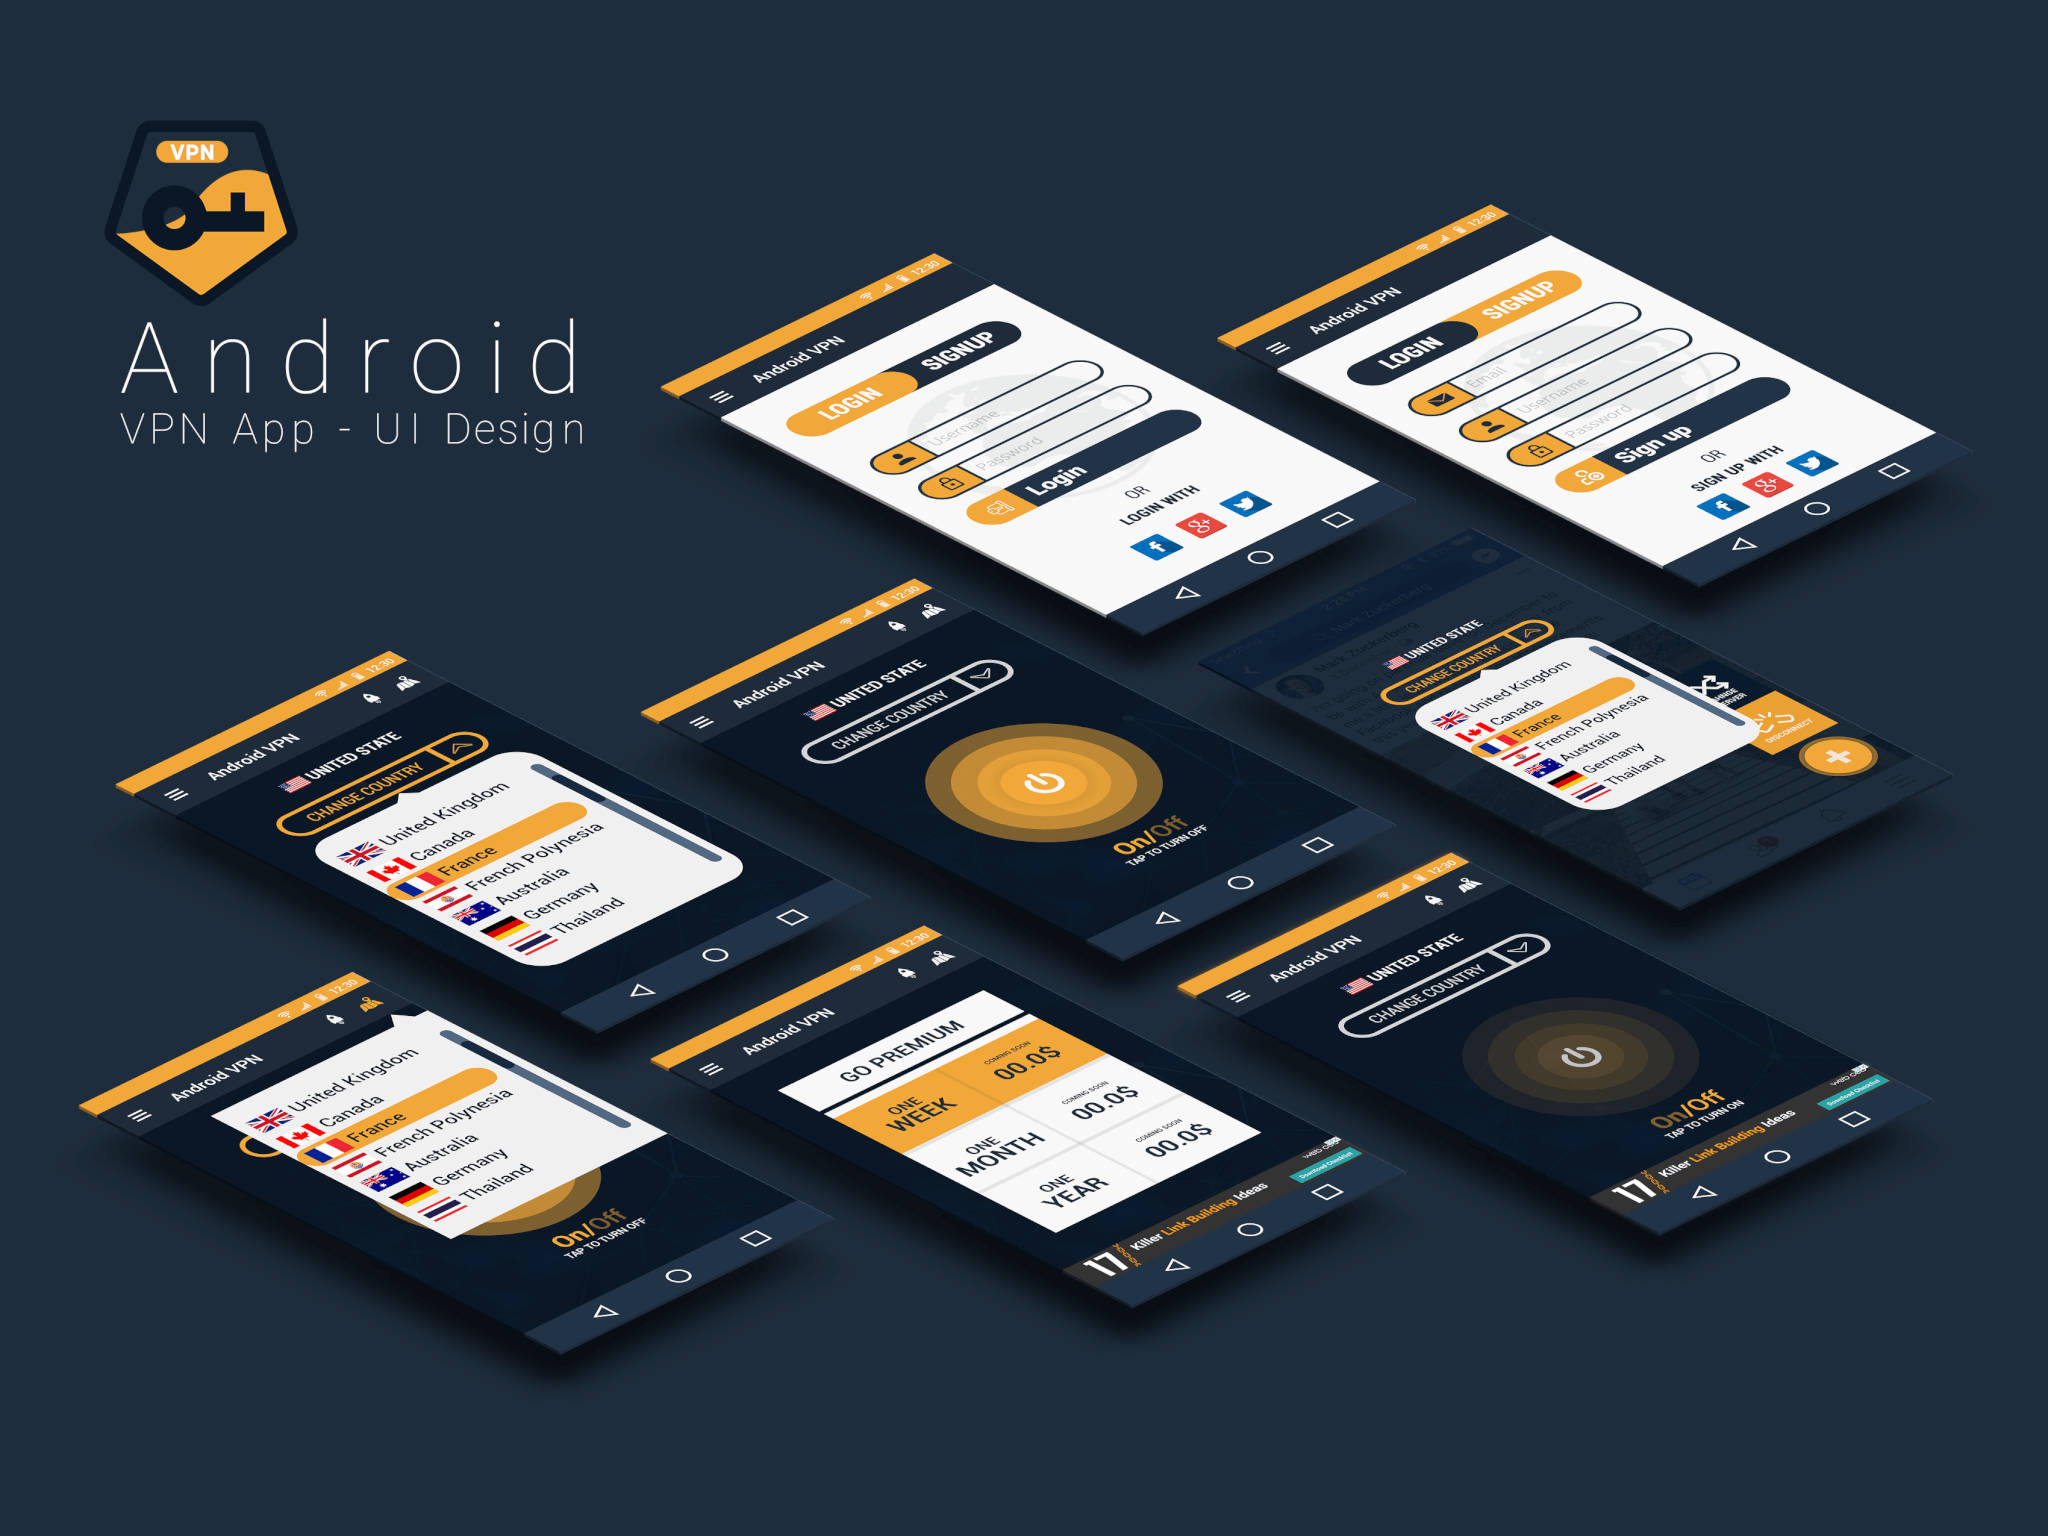 Android App Design by Abdul Mateen - Graphic Designer & Front-End-Developer - Islamabad, Pakistan